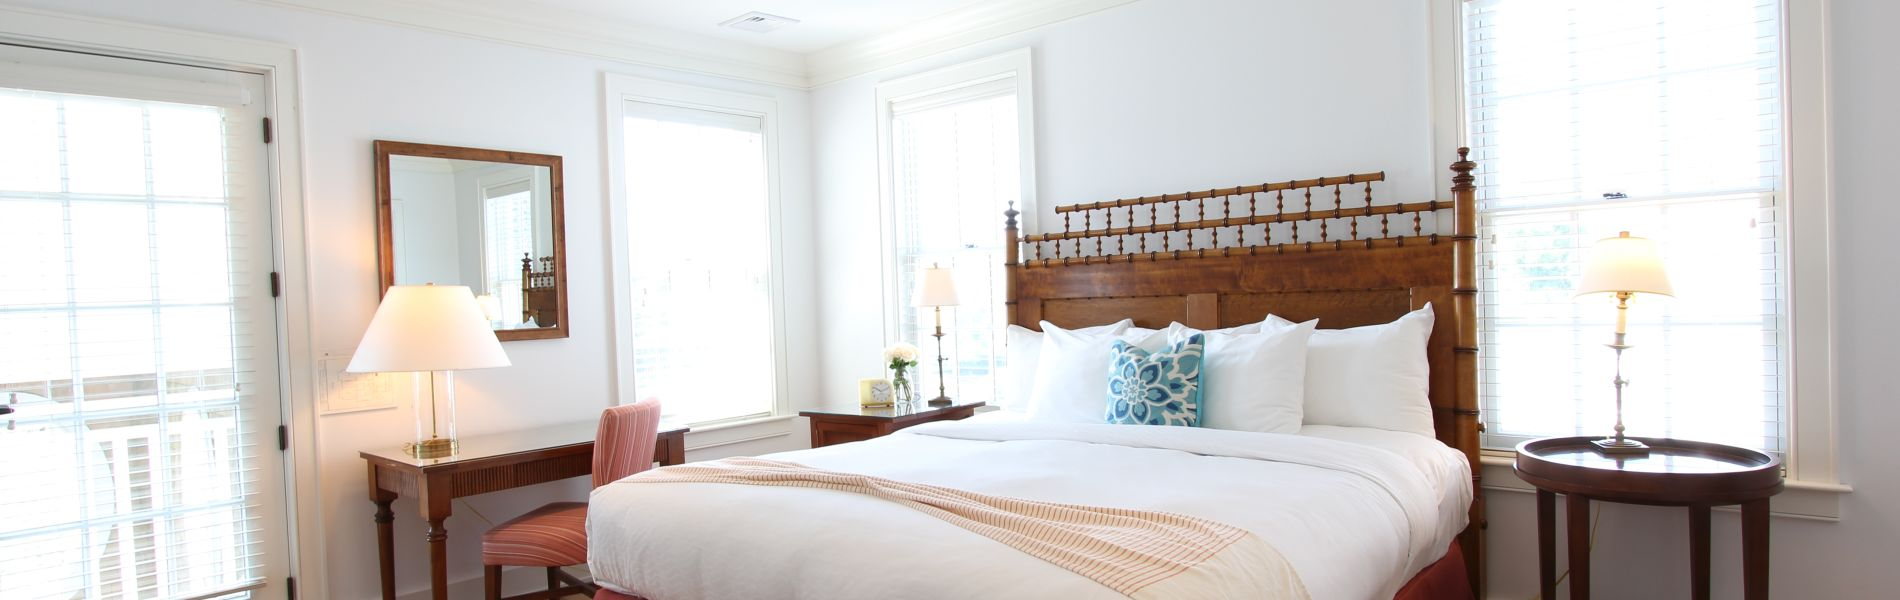 Private Suites in Edgartown - Captain's Cottages at Harbor View Hotel